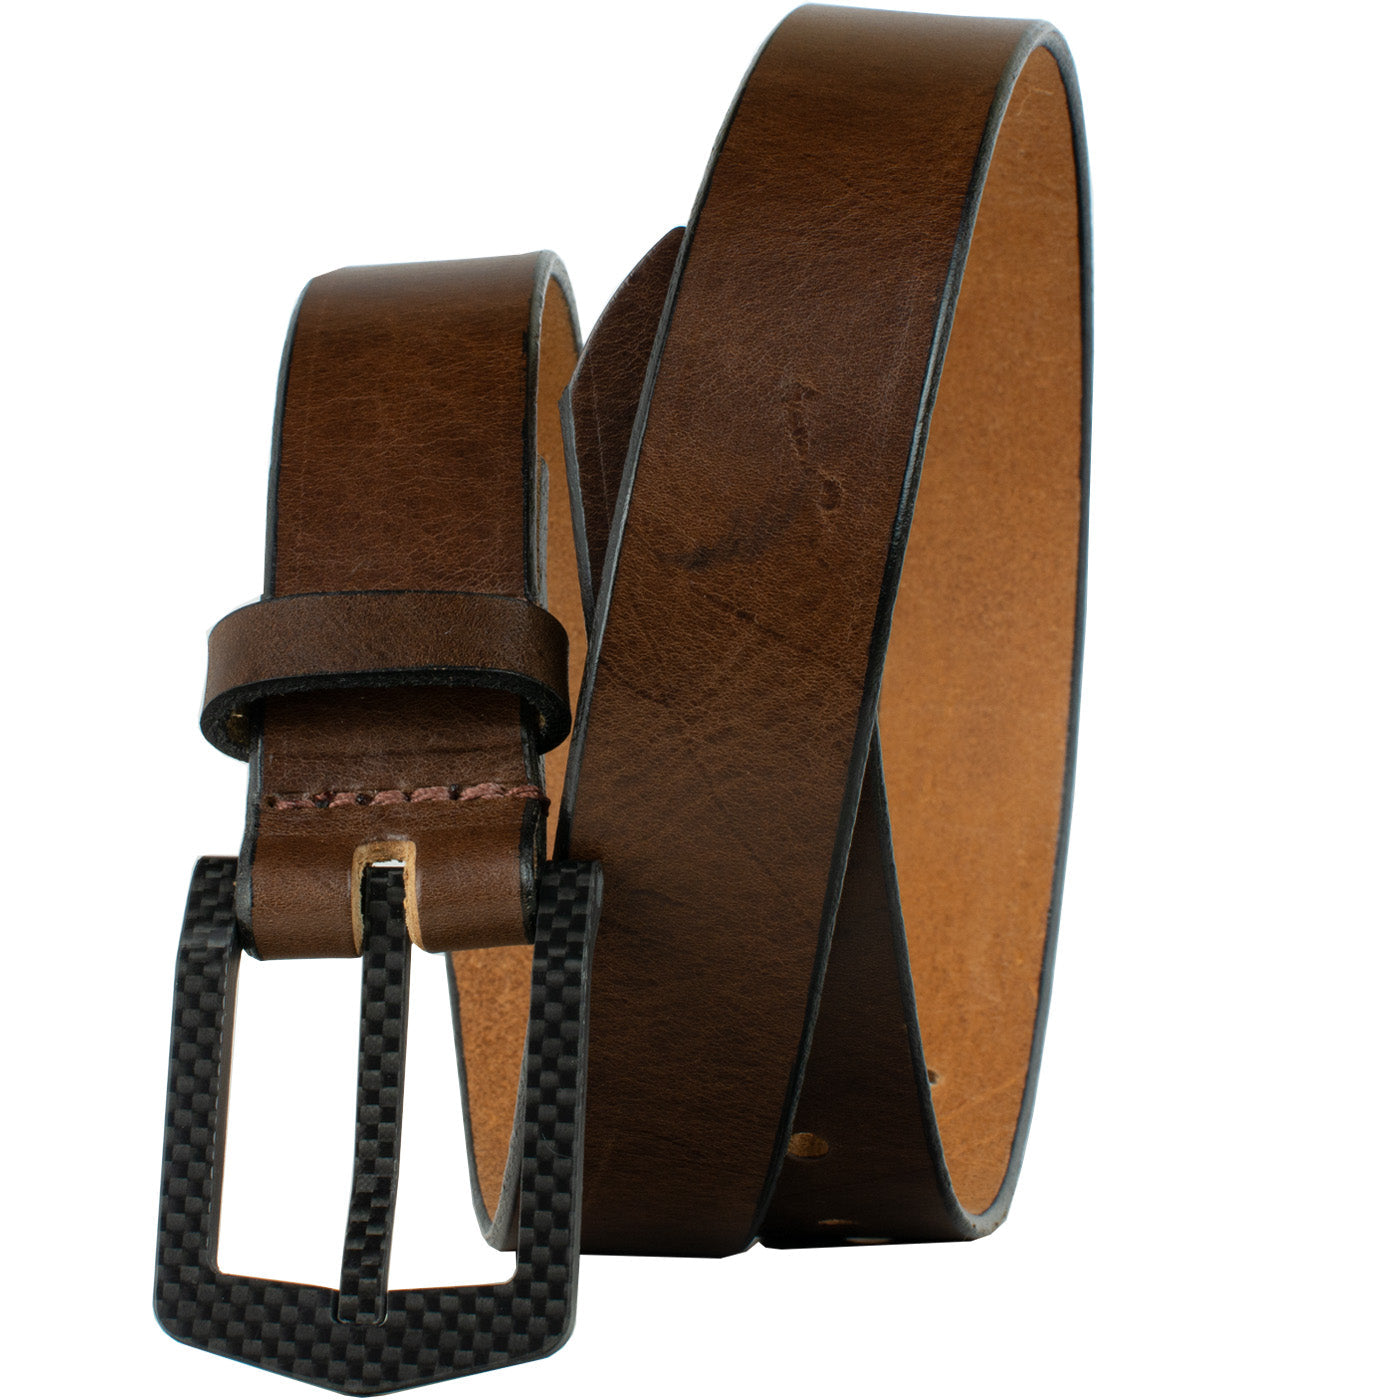 The Stealth Brown Belt by Nickel Smart - athenallergy.com, nickel free, hypoallergenic